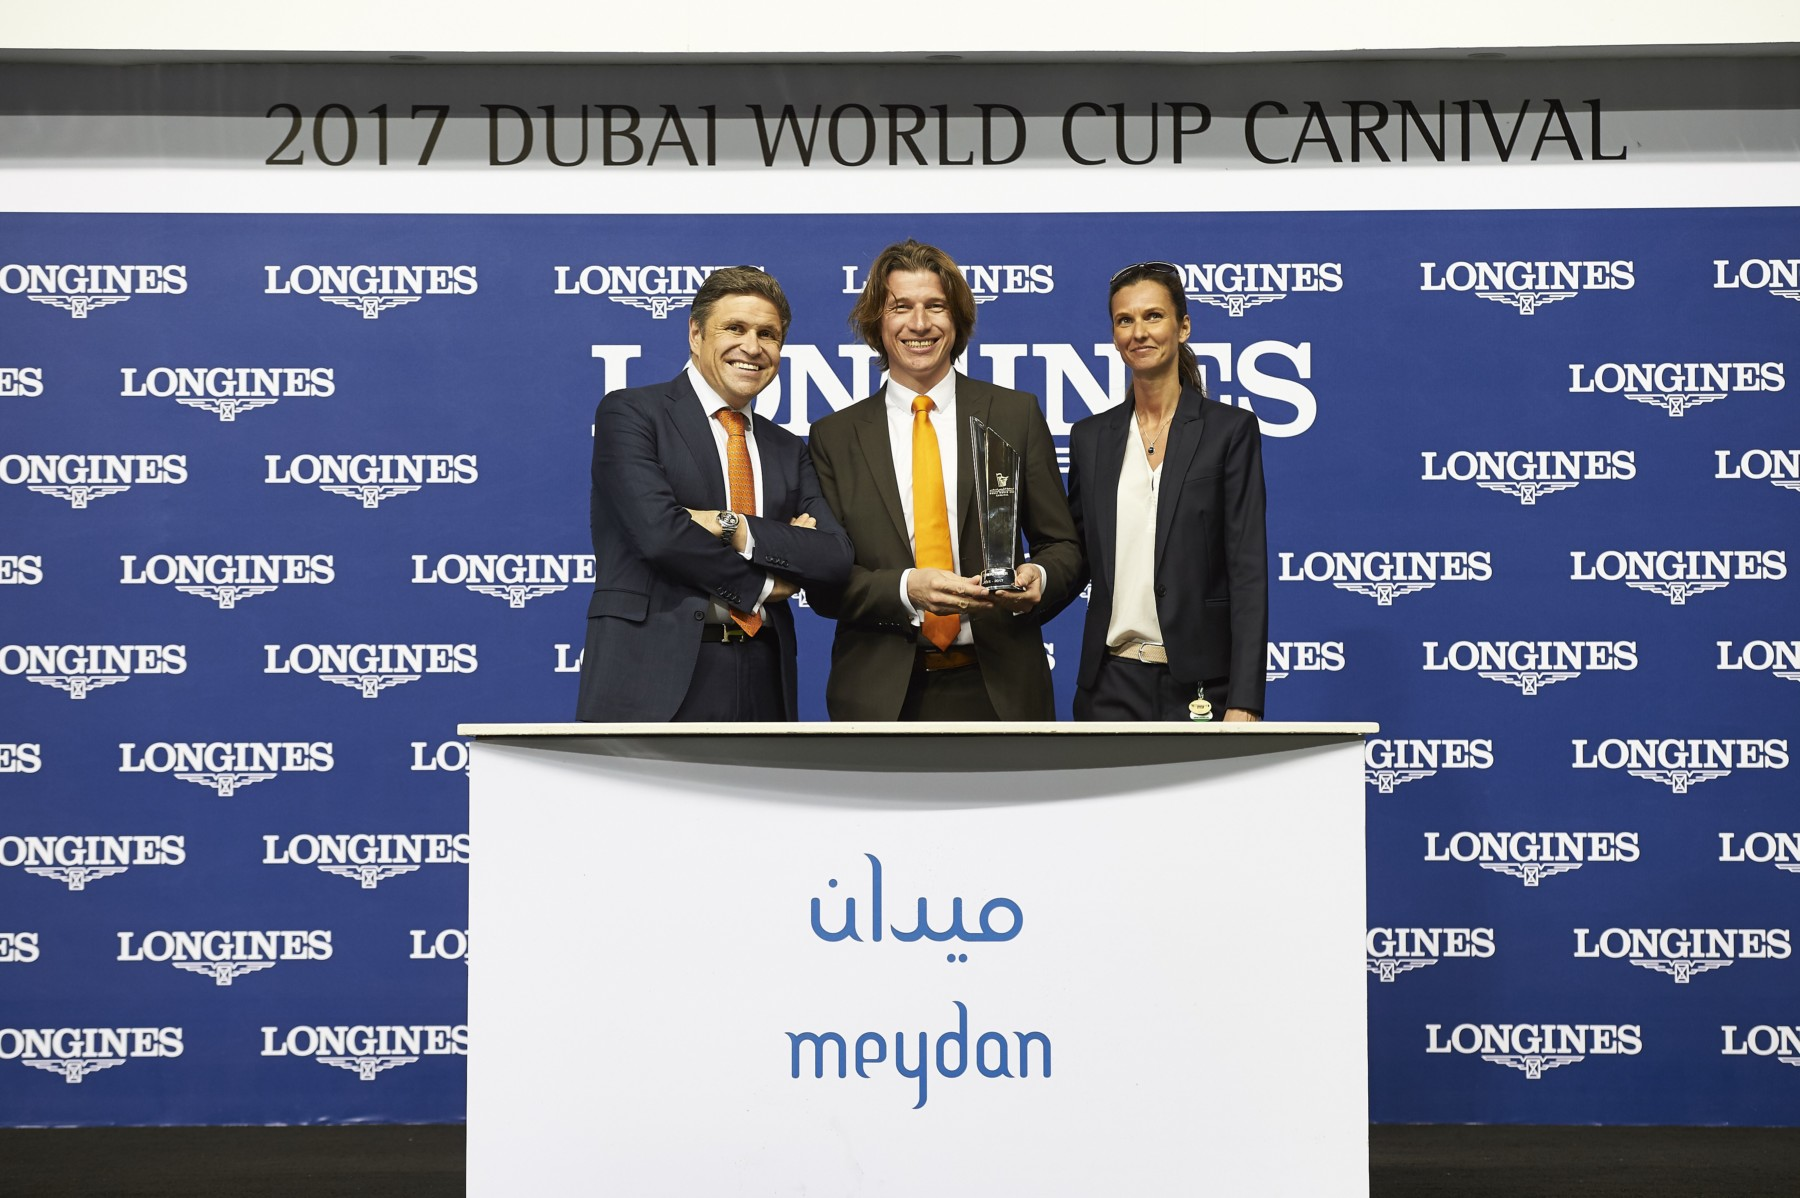 Golden Wood s'impose à Meydan pour Nicolas Caullery : « J'ai gagné ma World Cup ! »